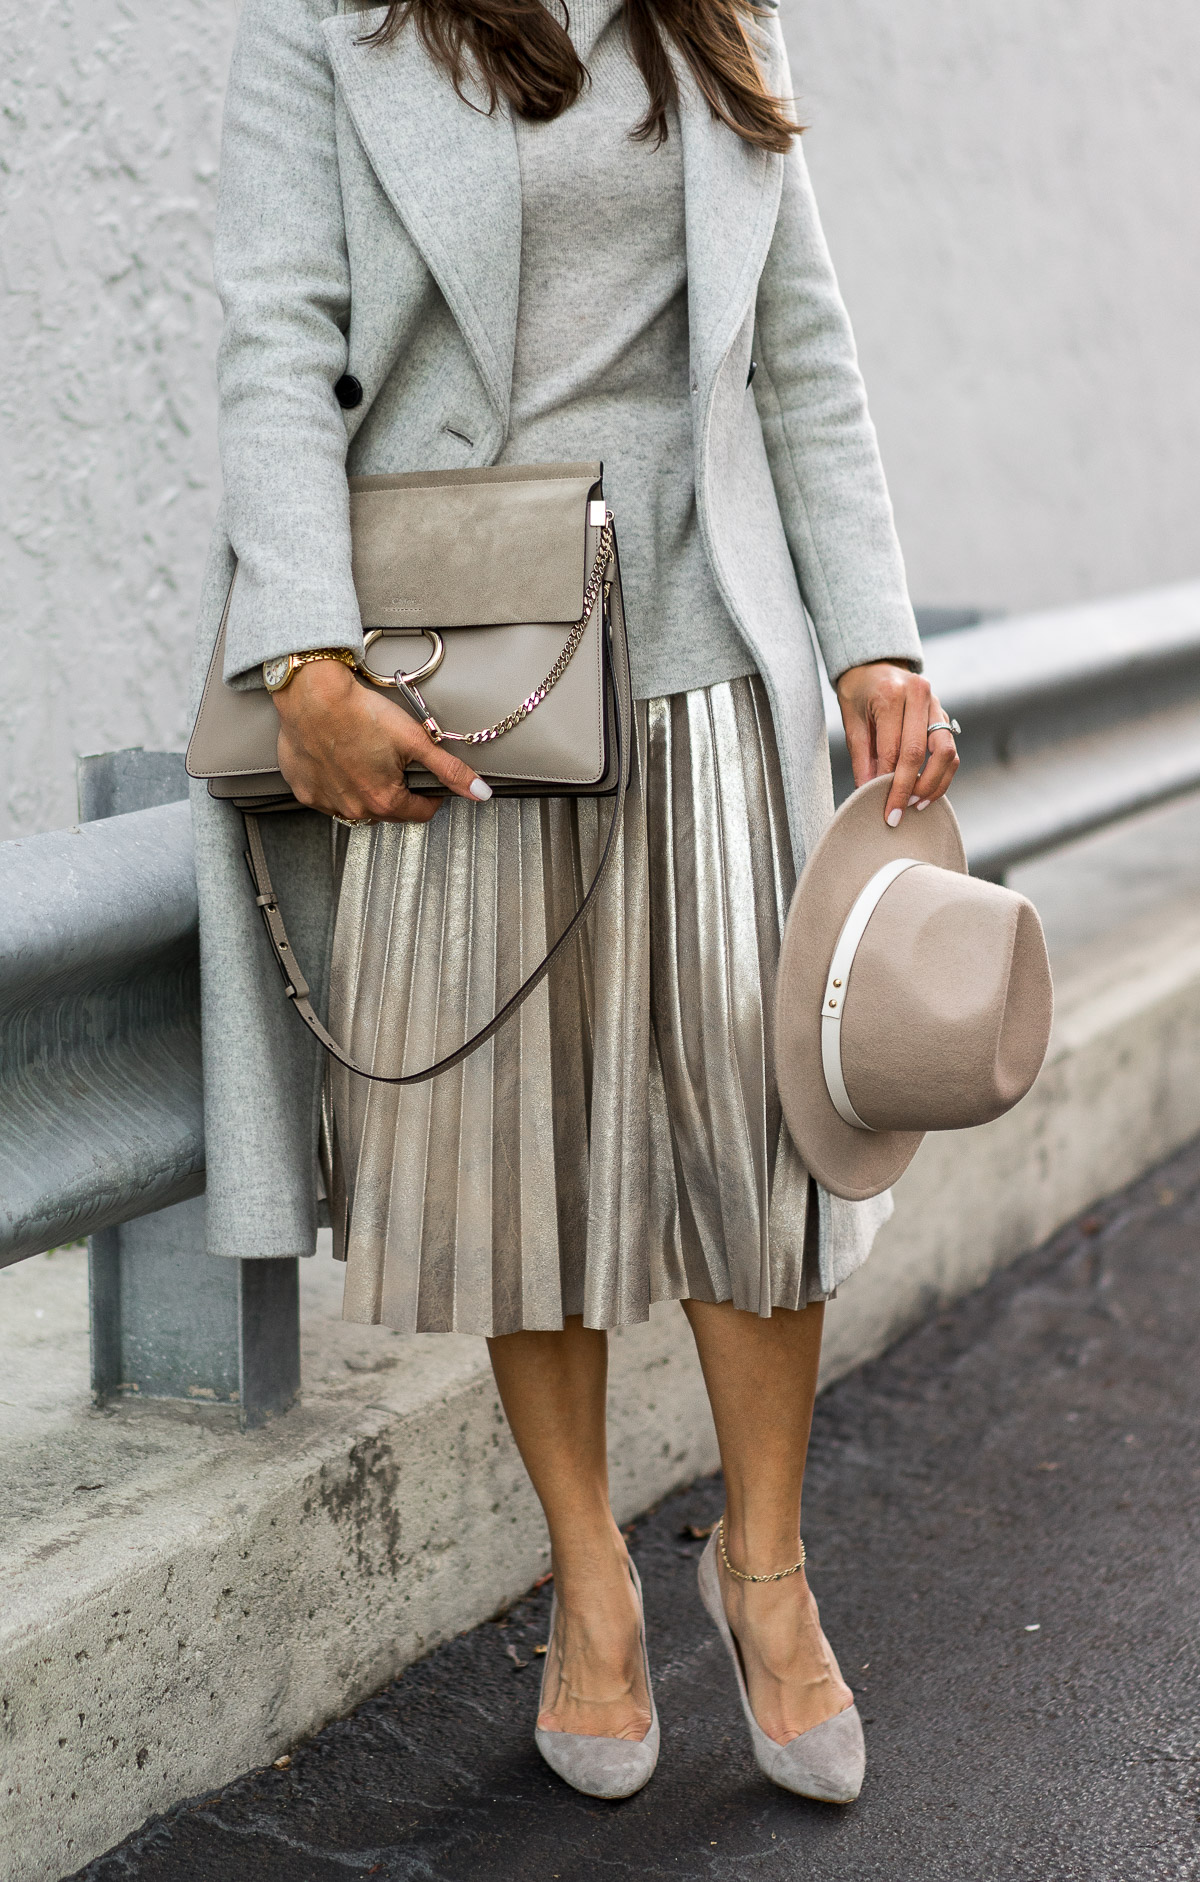 Amanda from A Glam Lifestyle blog shows how to style a gold metallic midi skirt with grey cashmere sweater and neutral accessories including Chloe Faye medium bag